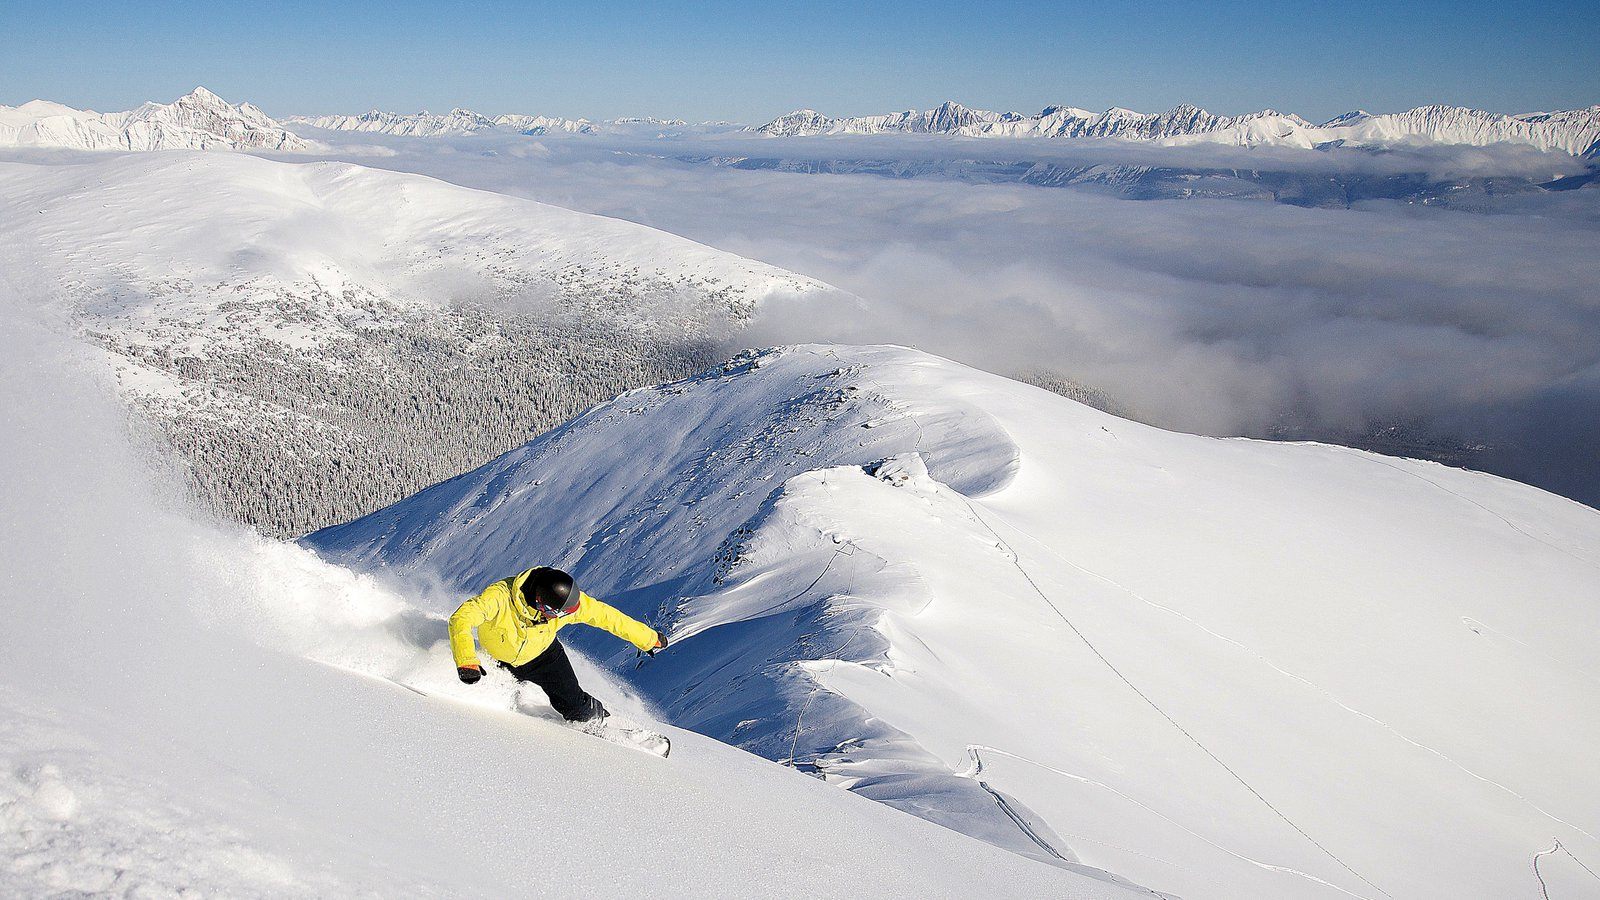 Marmot Basin featuring mountains, snow and snowboarding